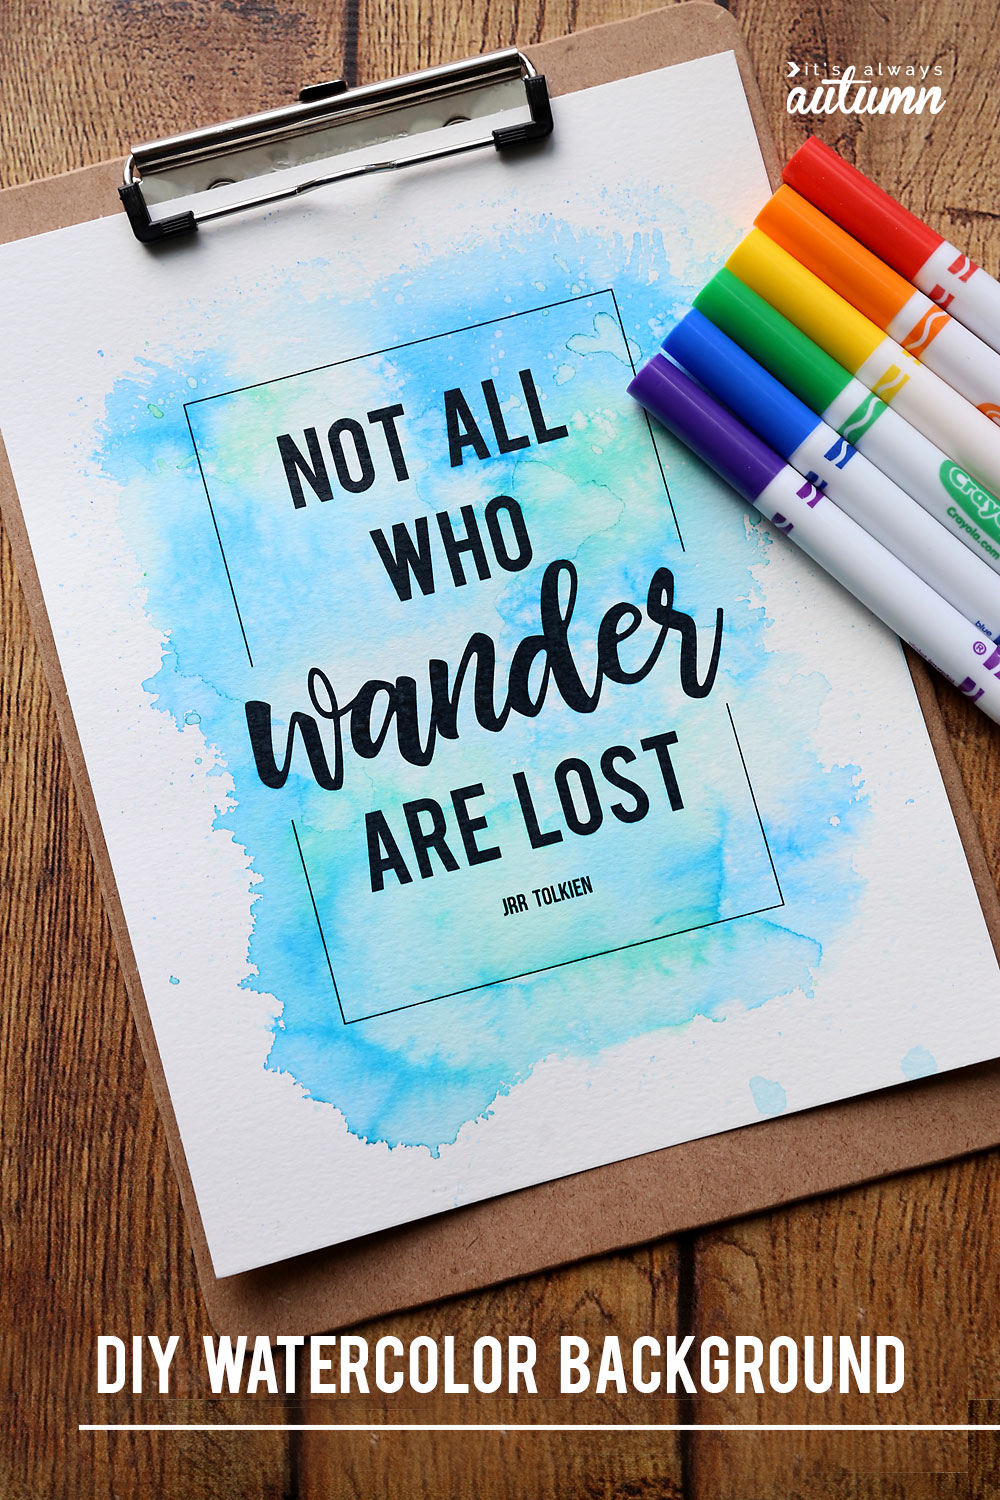 Quote print with watercolor background and markers